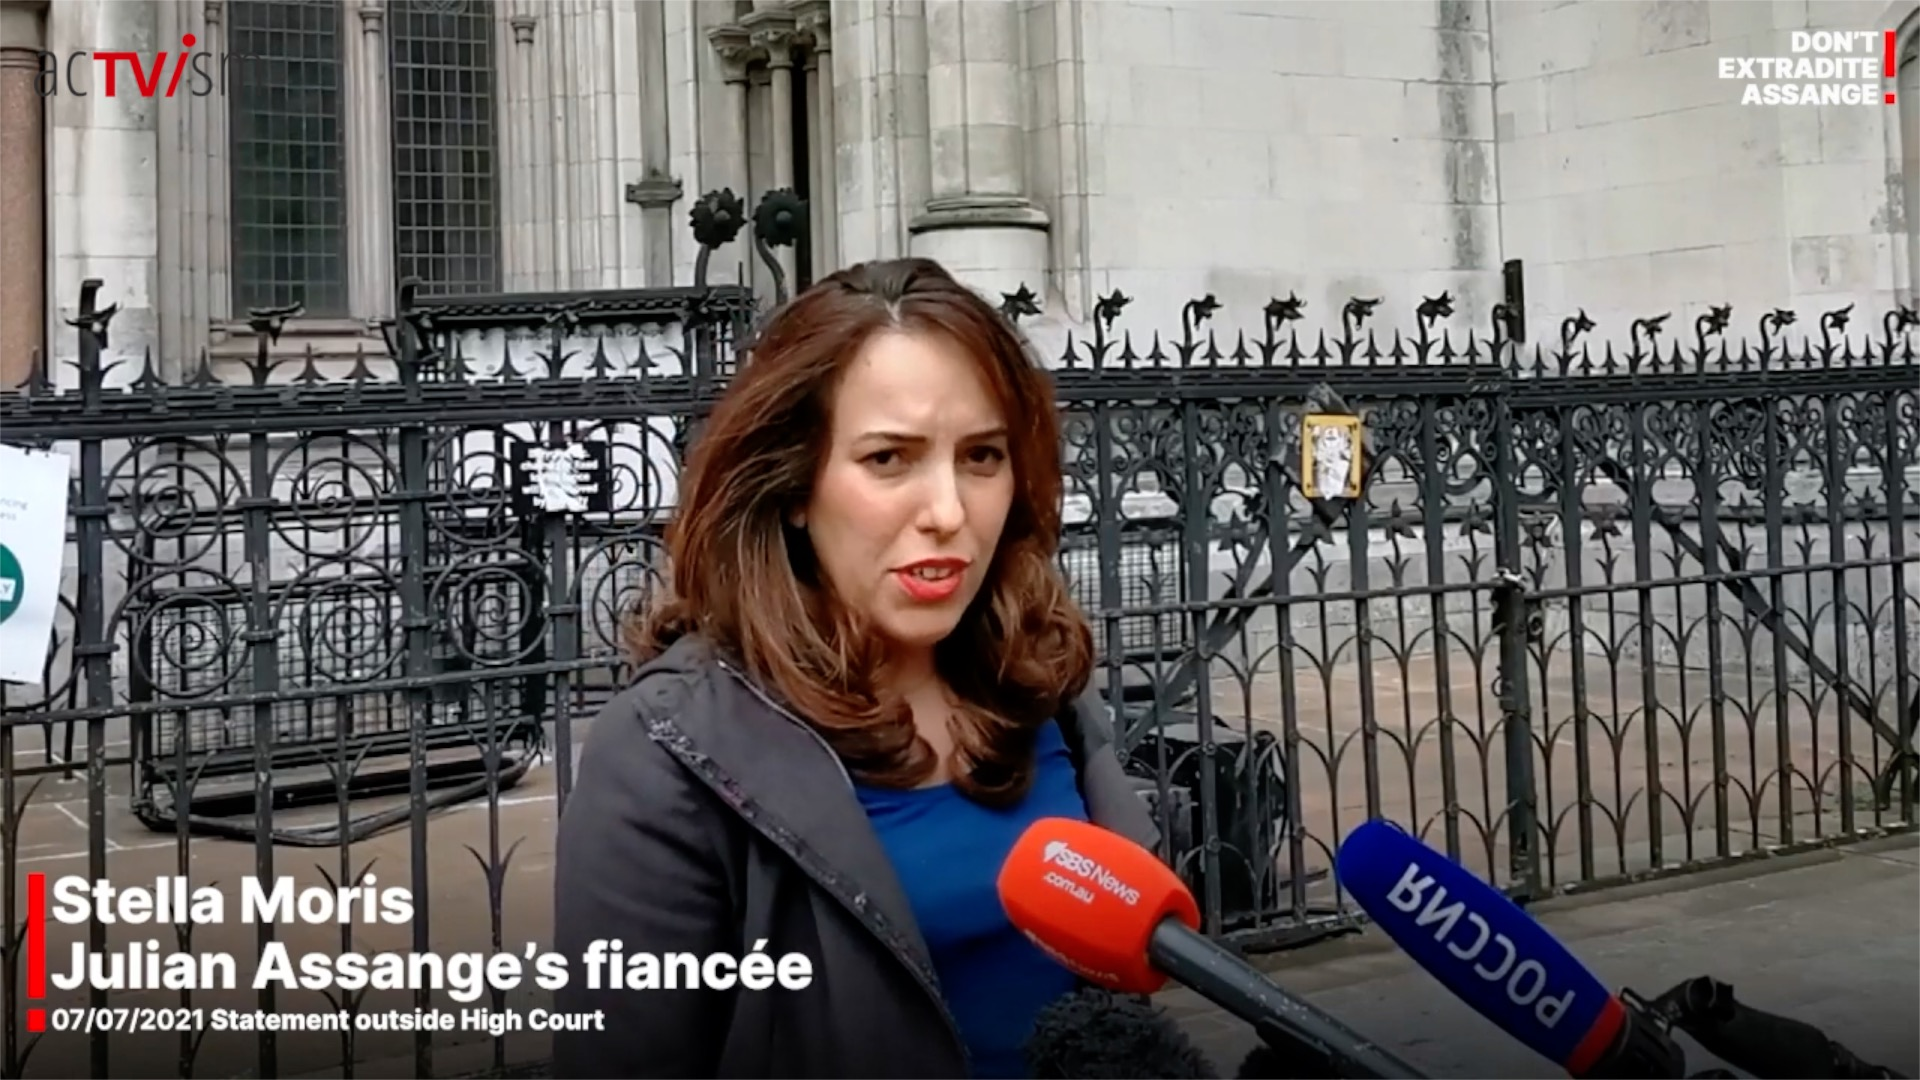 BREAKING: Latest Update on High Court ruling in Assange case by Stella Moris (Aufgrund limitierter finanzieller Mittel stehen manche Videos ggf. derzeit nur auf Englisch zur Verfügung. Spenden Sie auf unser Crowdfunding-Projekt, um uns mit der Übersetzung zu unterstützen.) In this video, Stella Moris, partner of Julian Assange, talks about the recent UK High Court decision in the Assange case. This video was produced and released by the Don't Extradite Assange campaign on July 7, 2021. We have republished it today to raise more awareness about this case. To watch our previous updates on this case,click here. VIDEO: BREAKING: Latest Update on High Court ruling in Assange case by Stella Moris MORE RECENT VIDEOS ON THIS TOPIC VIDEO: Taylor Hudak Speech on the Fight to Free Julian Assange VIDEO: EXCLUSIVE: Julian Assange's Father and Brother Interview To watch more of our videos on this topic or with other experts such as Edward Snowden, Noam Chomsky, Abby Martin, Yanis Varoufakis, Glenn Greenwald, Jeremy Scahill, Jill Stein, Daniel Ellsberg, etc, please visit and subscribe to our YouTube channel byclicking here. Donate today to support independent & non-profit media! Click hereor on the picture below: